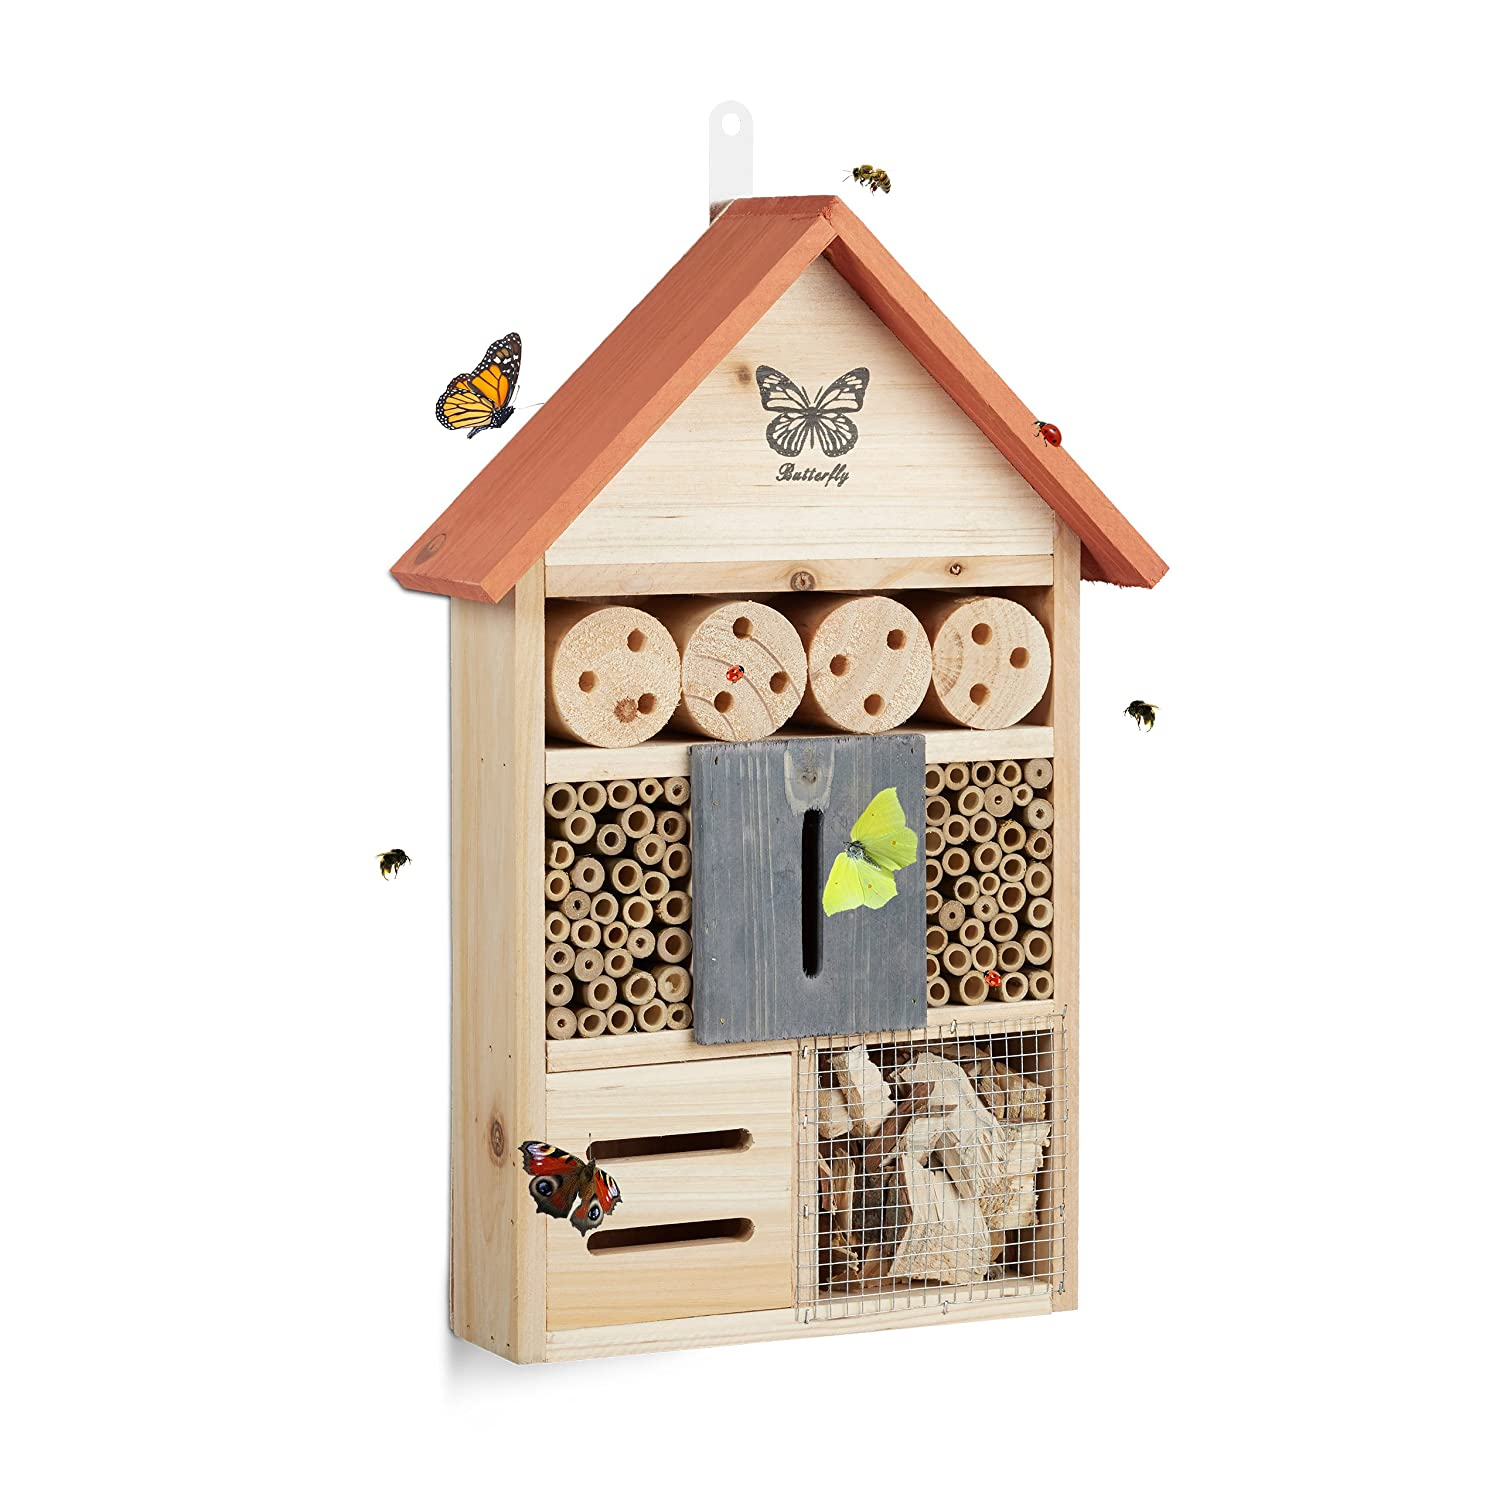 Relaxdays Butterfly Insect Hotel, Nest Aid for Bees, Ladybugs, for the Garden, HxWxD: 41.5 x 27.5 x 8.5 cm, Orange 10020738_57